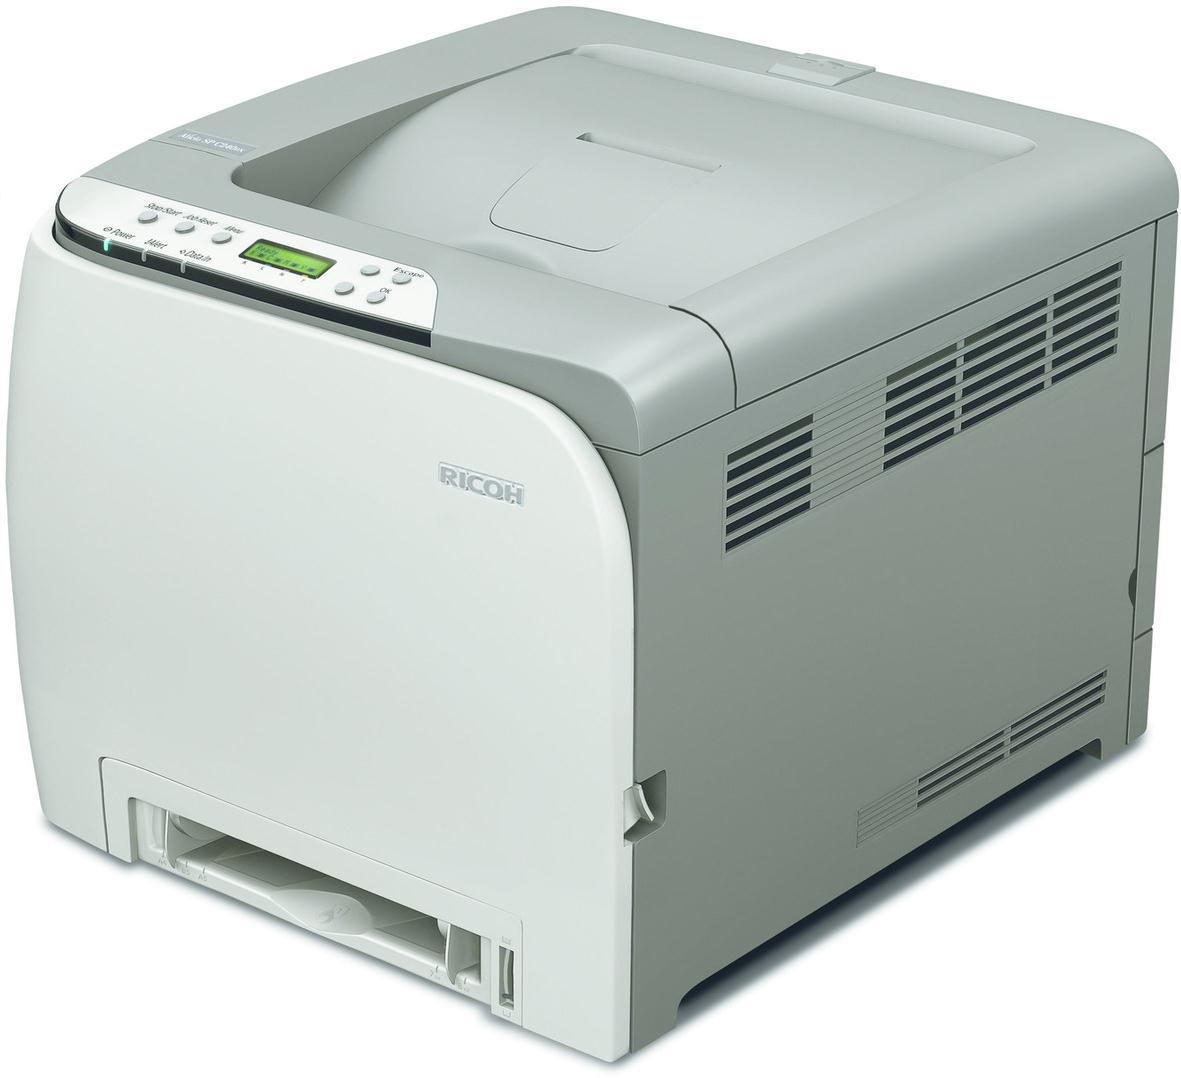 Ricoh SPC240DN A4 Colour Laser Printer